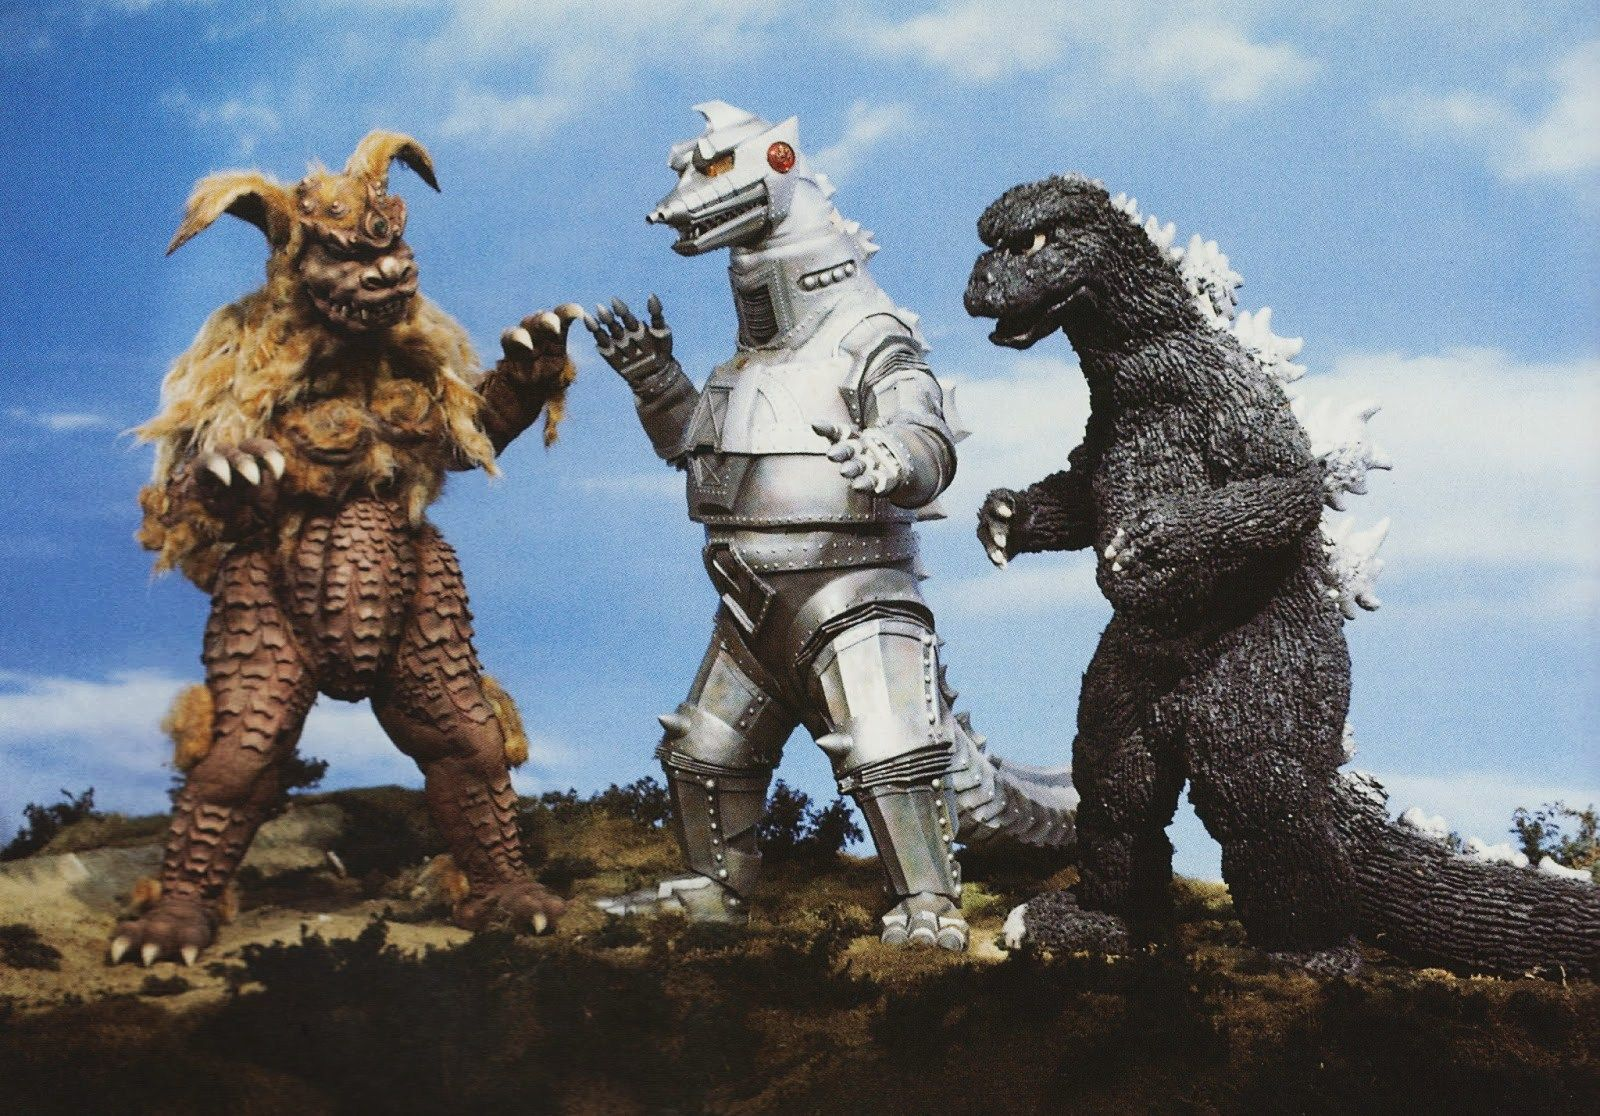 King Seesar, Mecha-Godzilla, Godzilla in Godzilla vs the Cosmic Monster (1974)